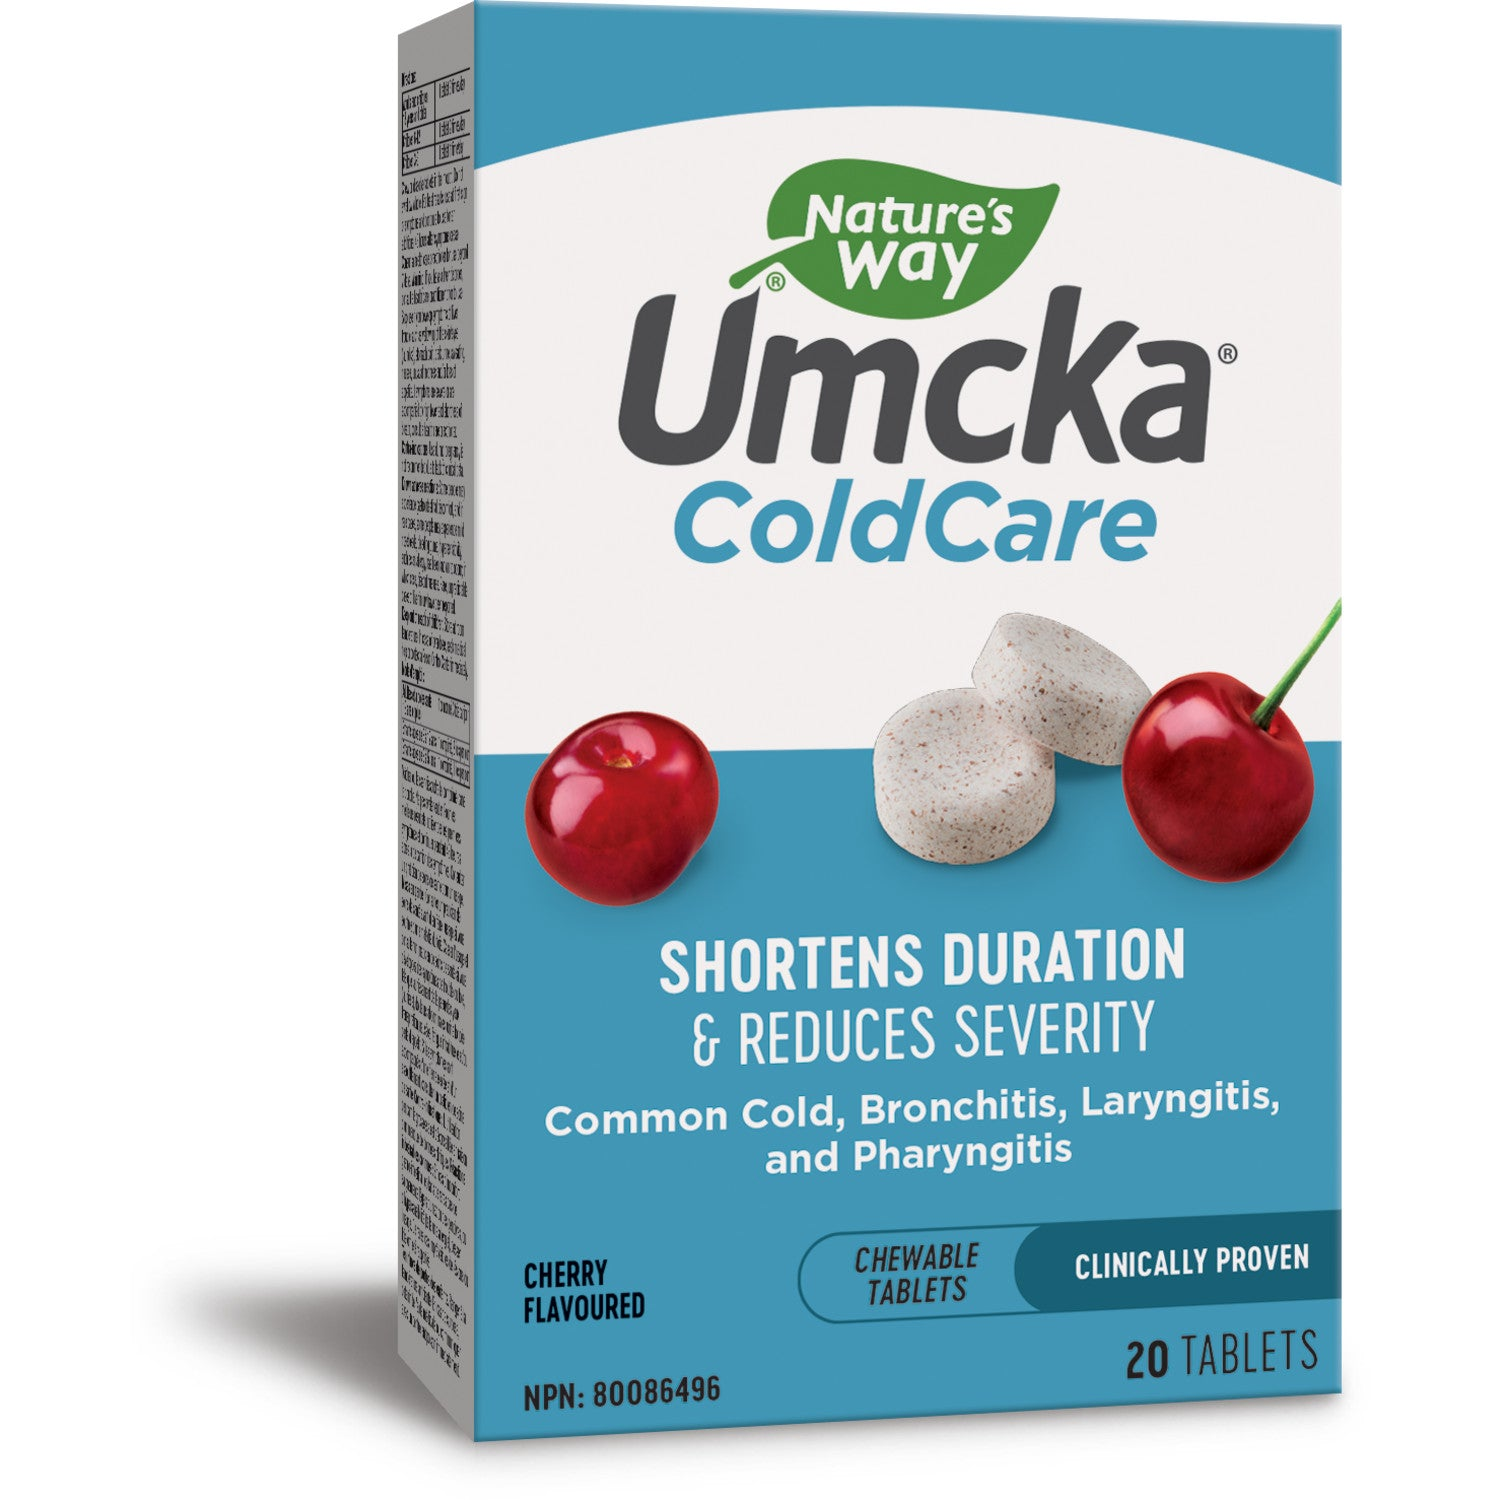 Umcka® ColdCare, Chewable Tablets, Cherry / 20 chewables